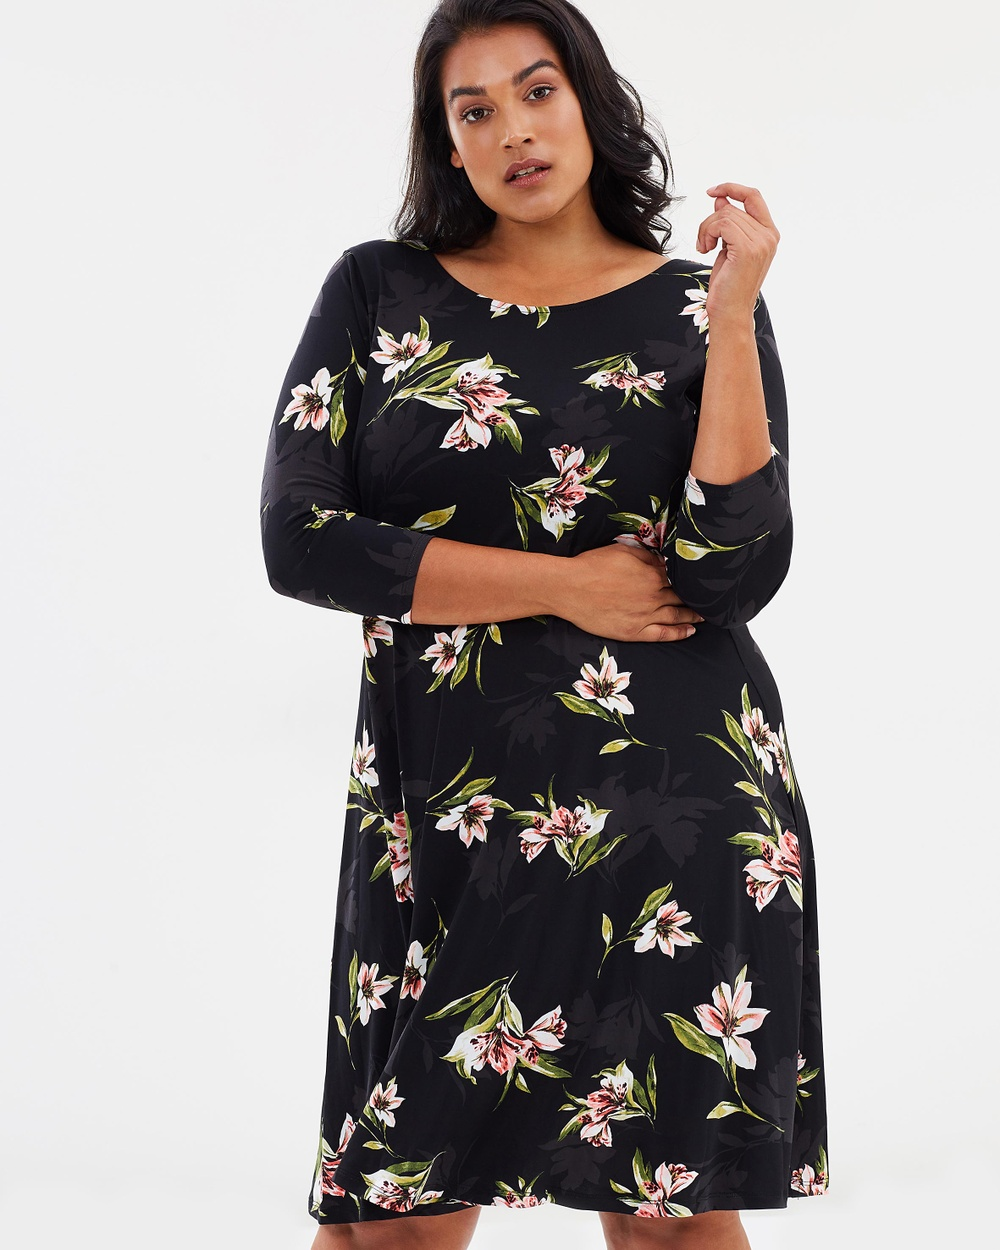 EVANS Tropics Floral Dress Dresses Multi Dark Tropics Floral Dress